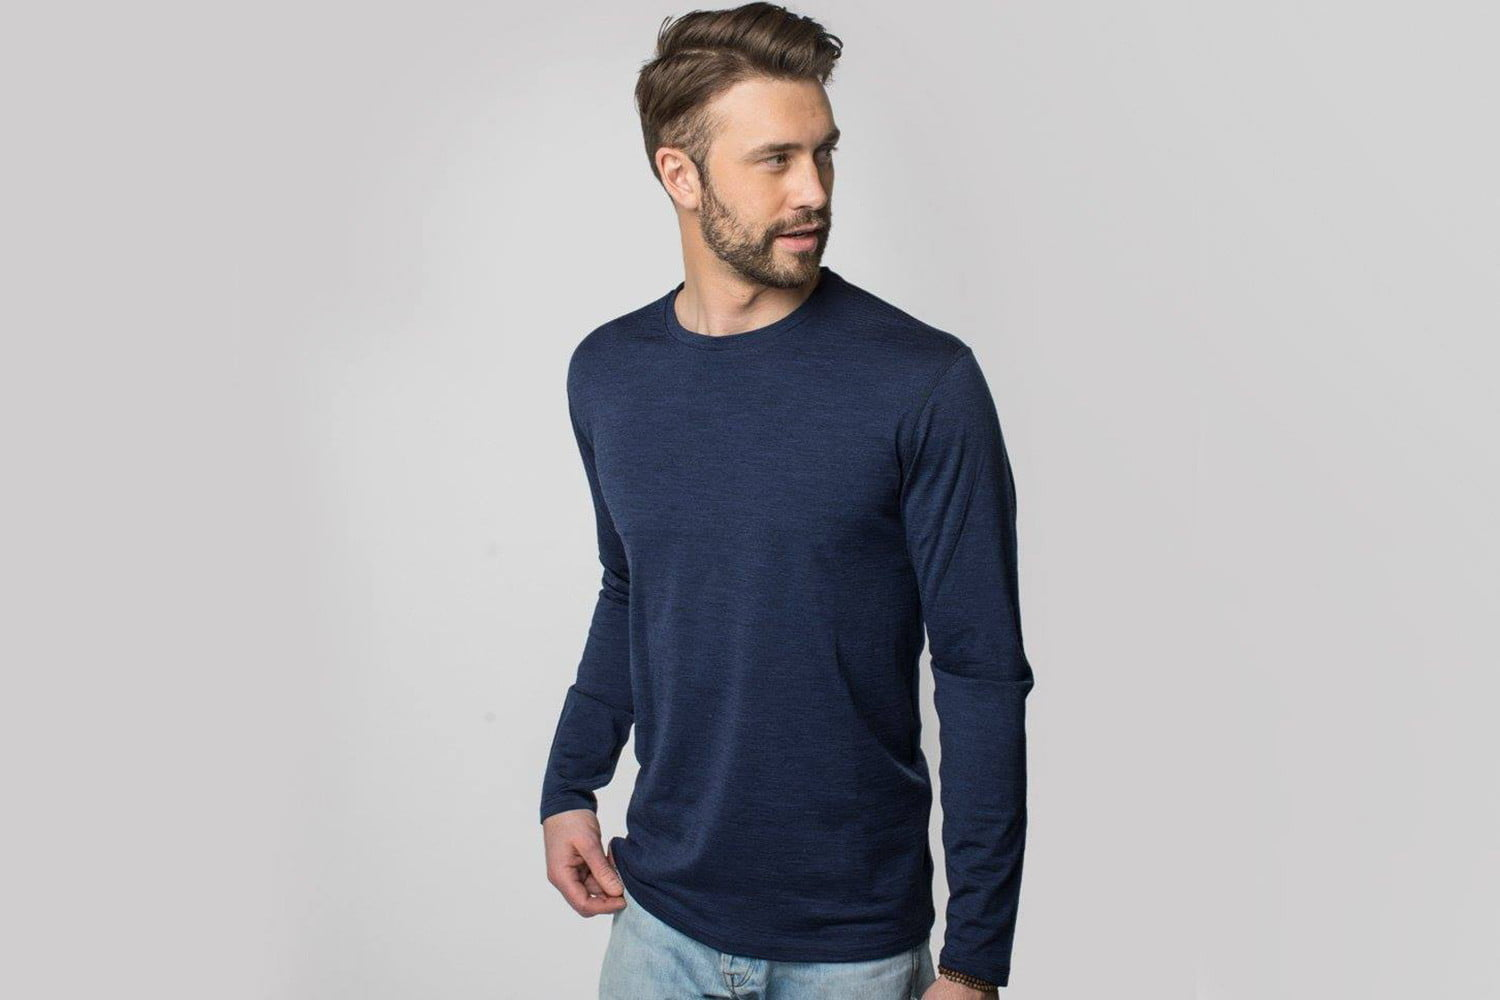 The Best Merino Shirts for Men To Layer With This Fall and Winter